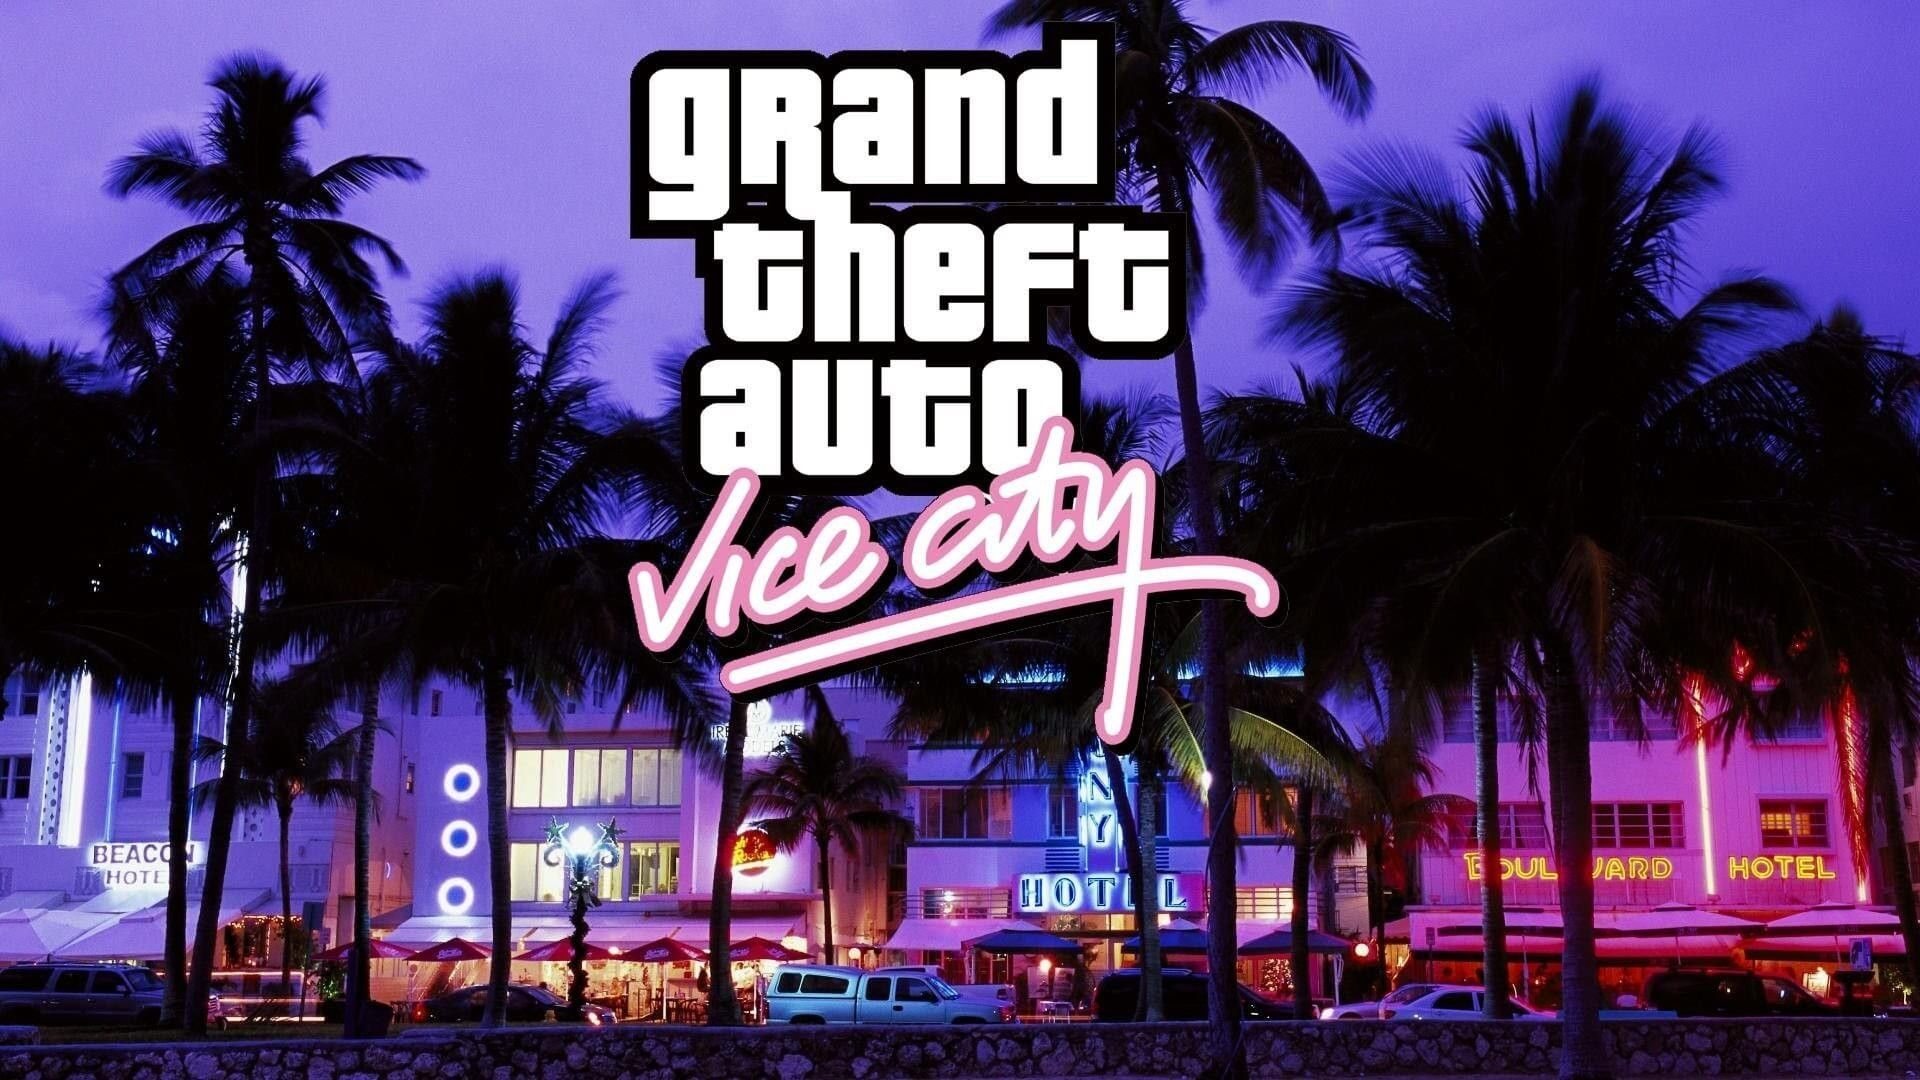 1920x1080 Grand Theft Auto Vice City Cheat Codes For Xbox Grand Theft Auto Grand Theft Auto Series City Wallpaper